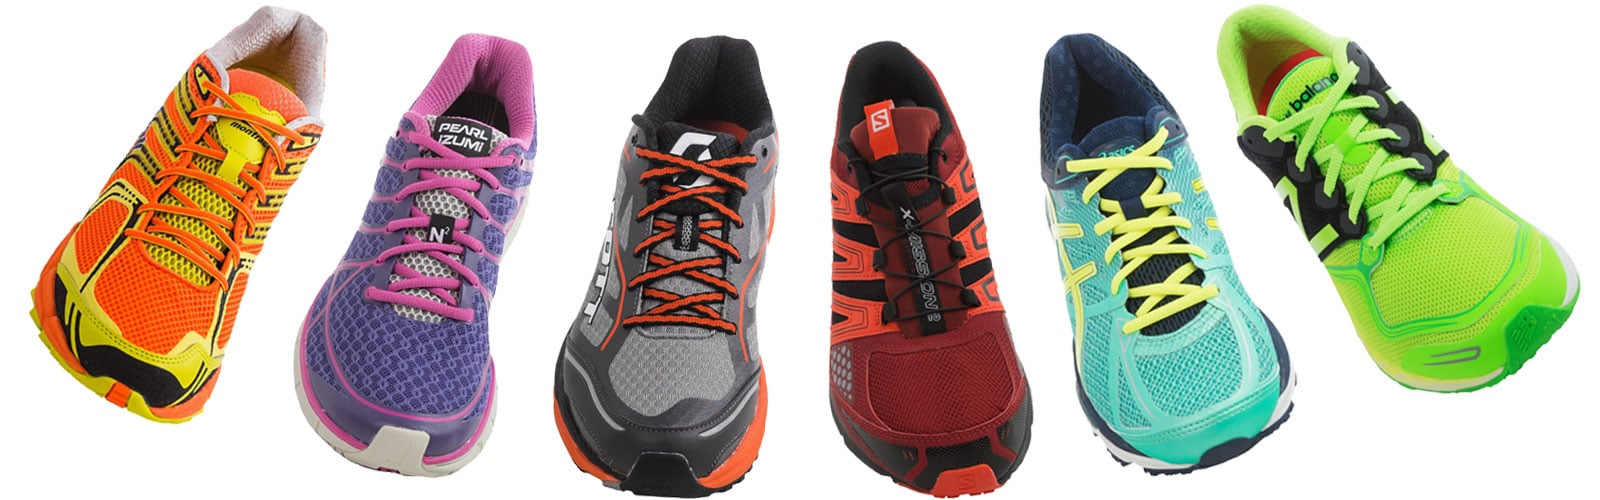 Best Running Shoes For Plantar Fasciitis And Flat Feet